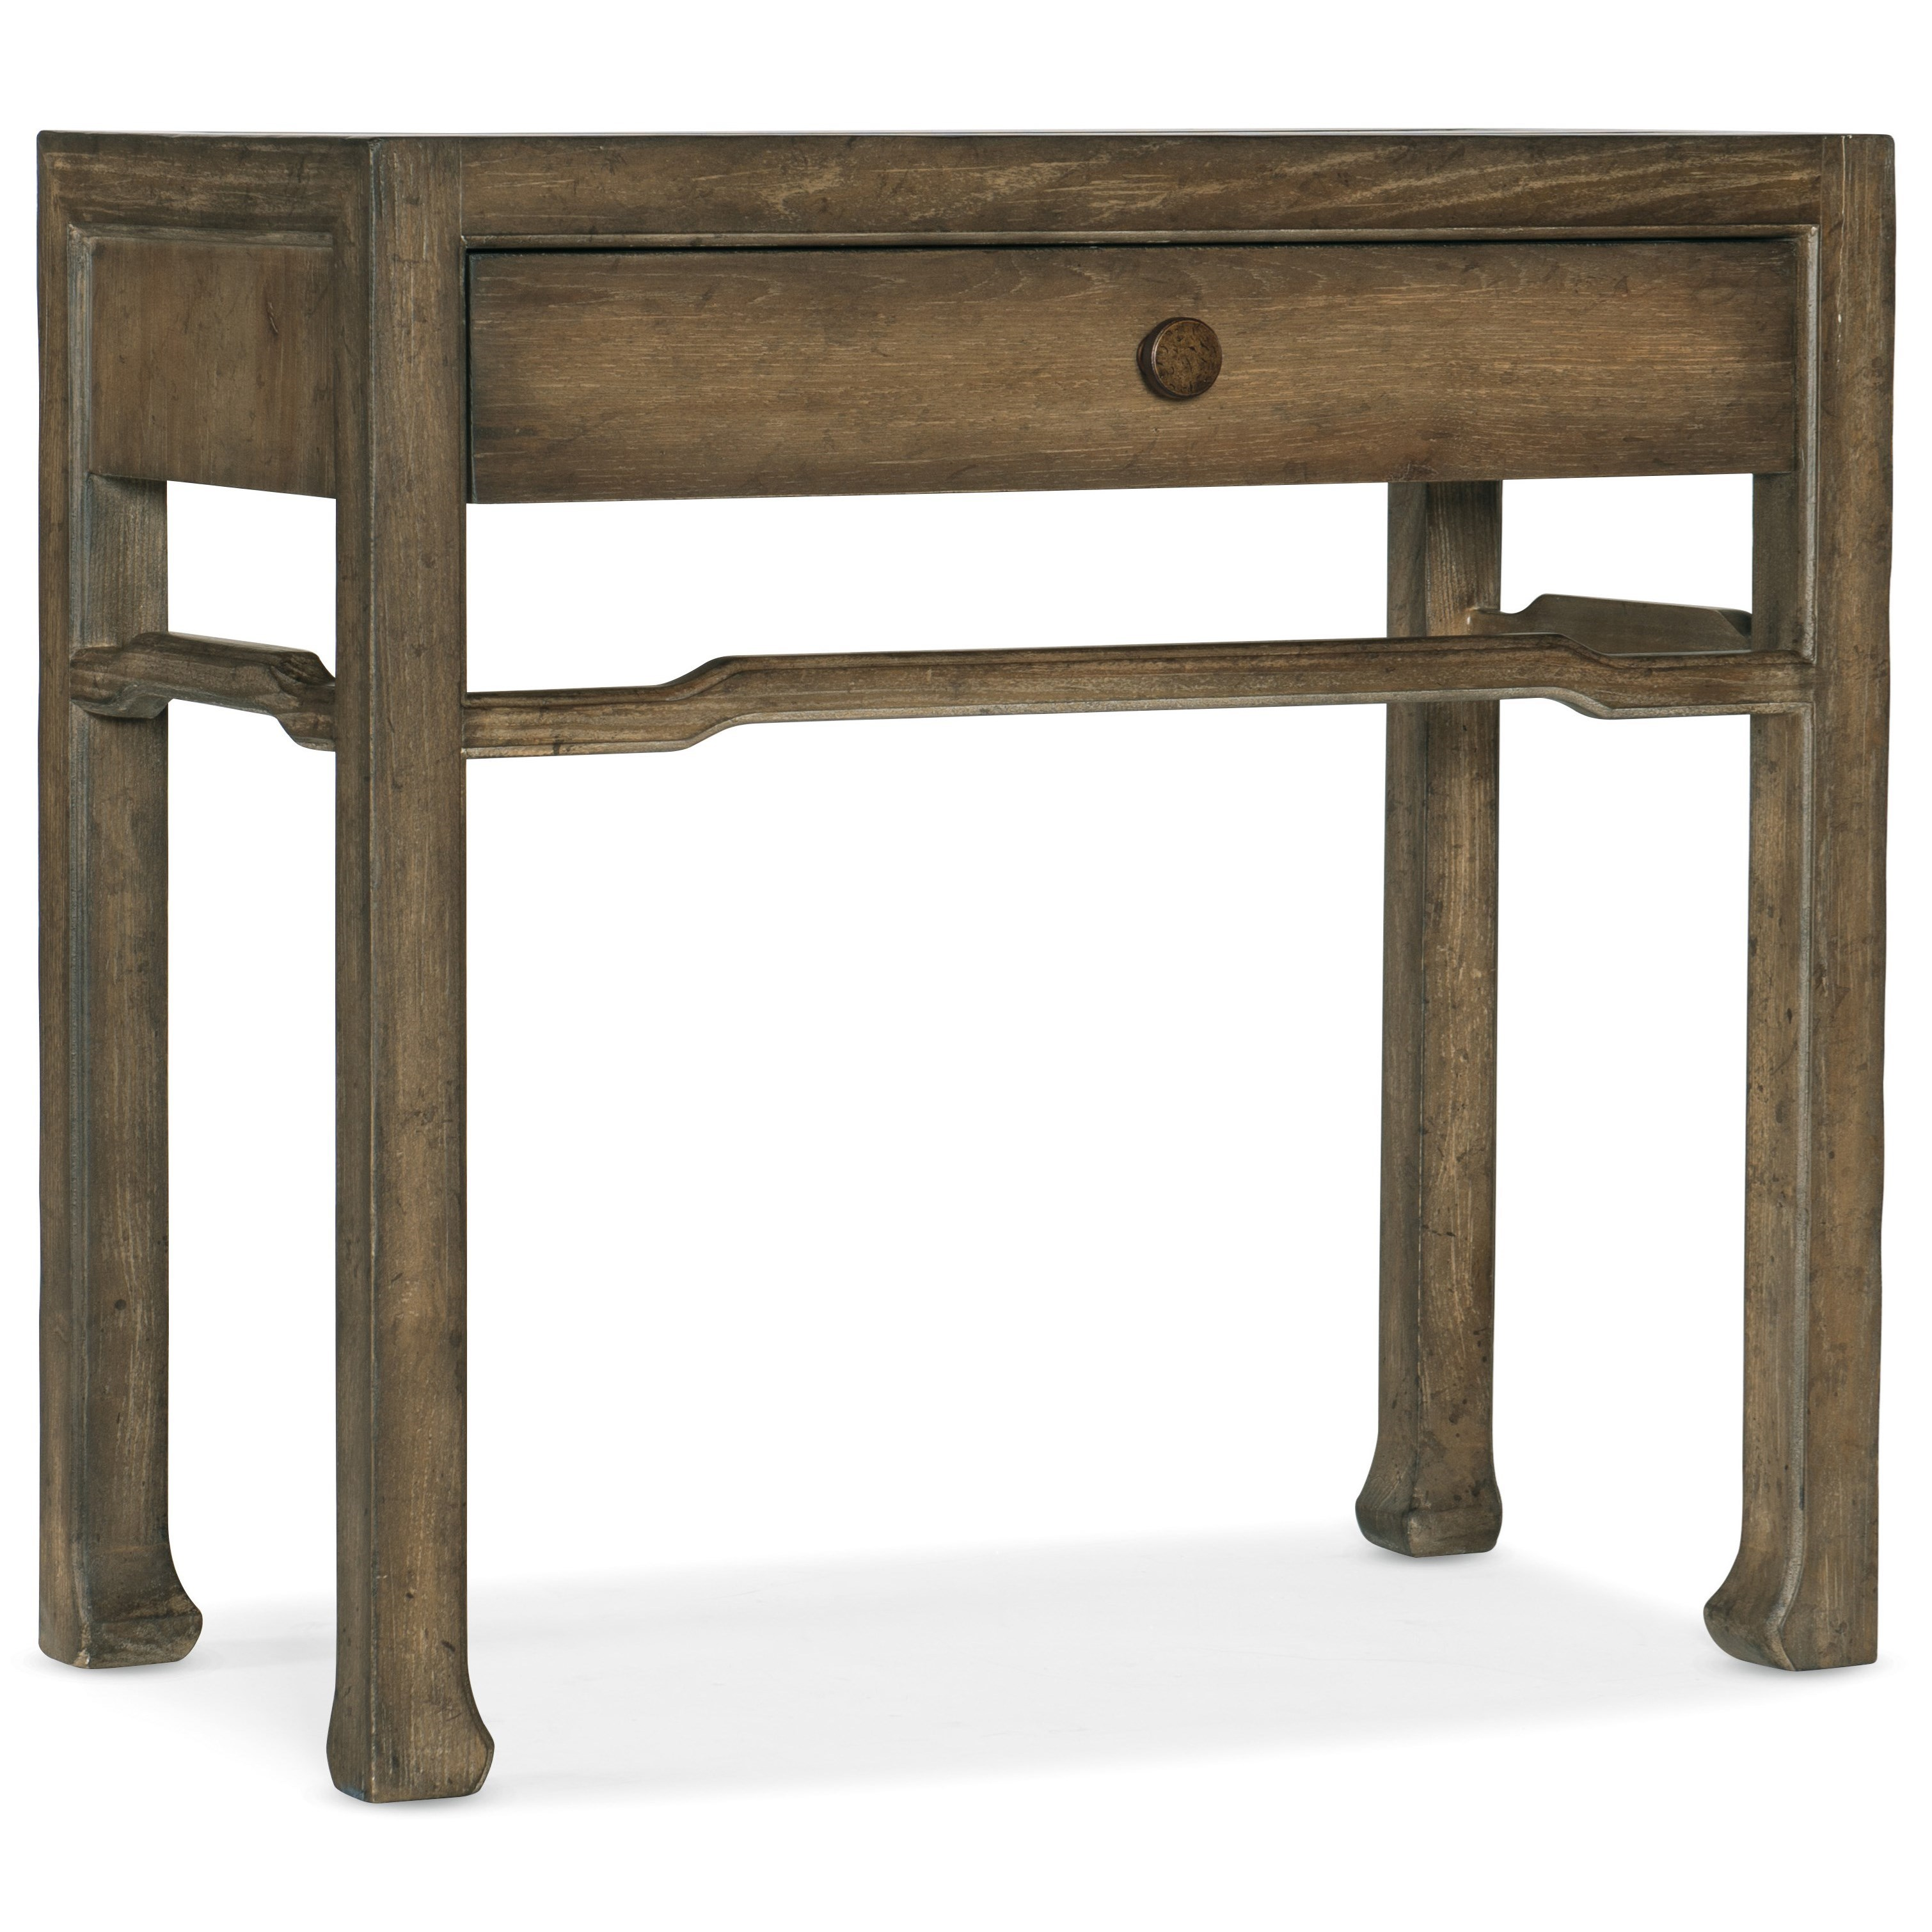 Sundance Nightstand by Hooker Furniture at Alison Craig Home Furnishings